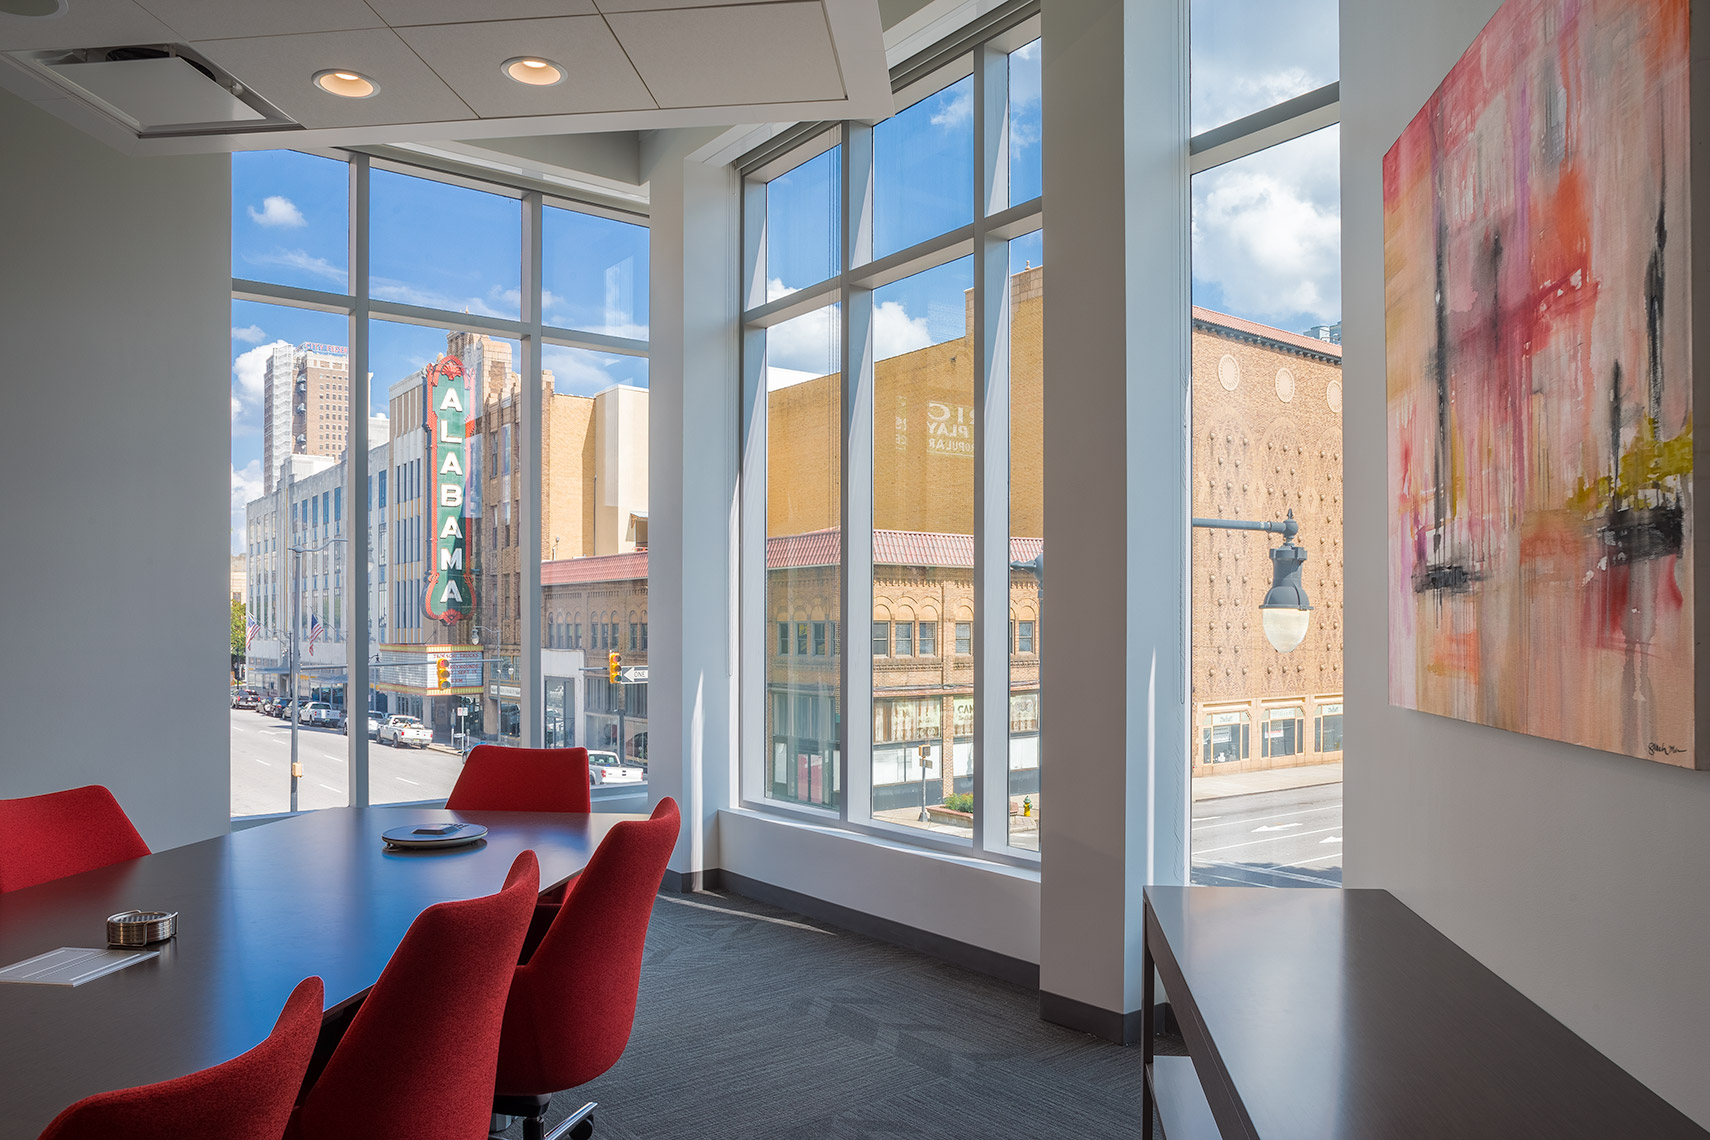 Meeting Room with city view at Corporate Office Renovation Birmingham